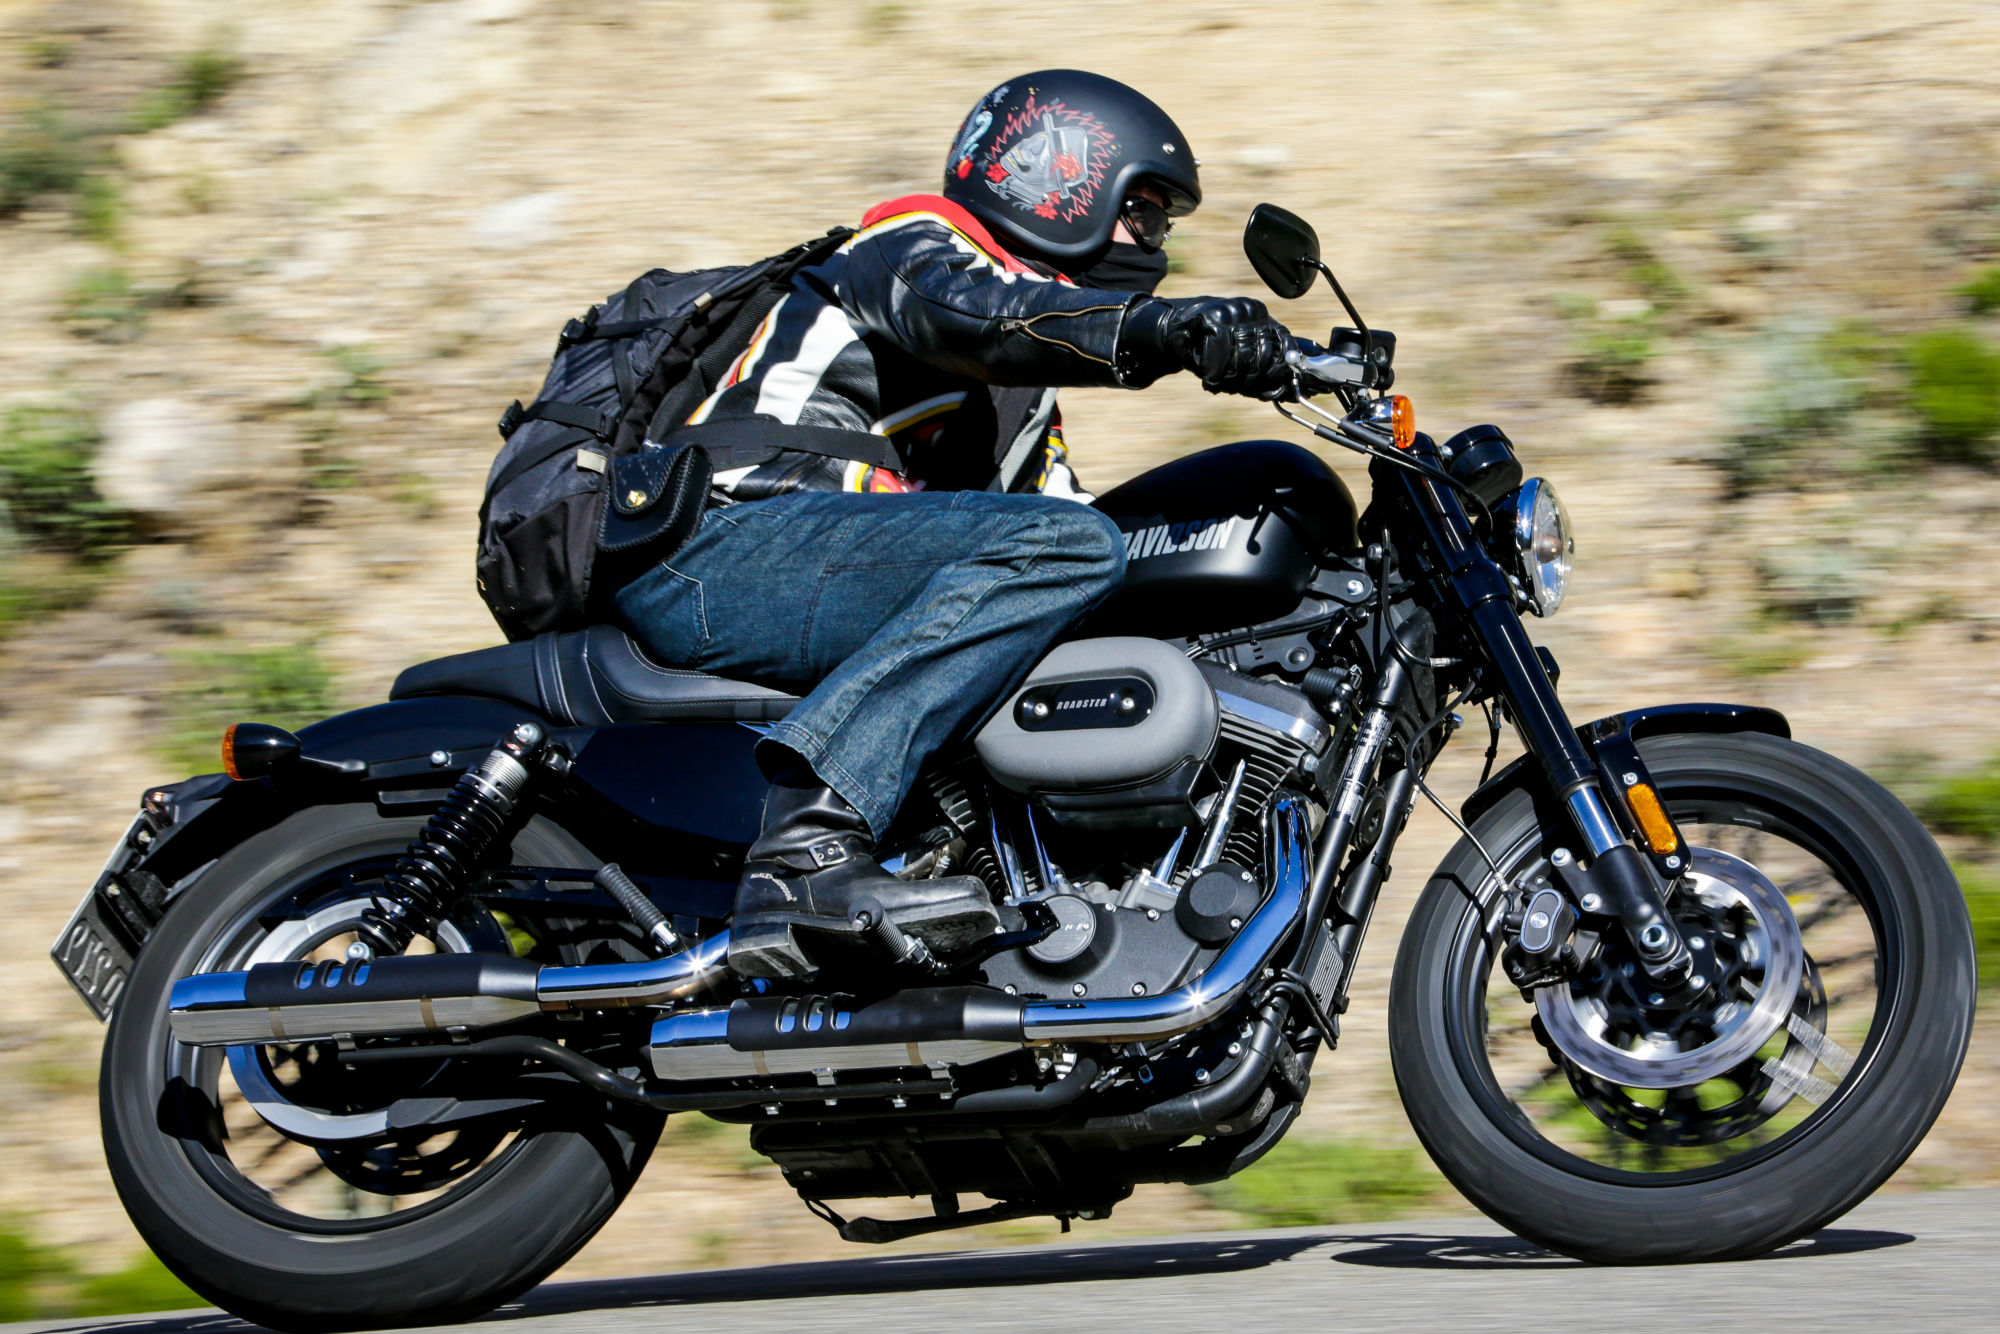 First Ride Harley Davidson Roadster And Visordown